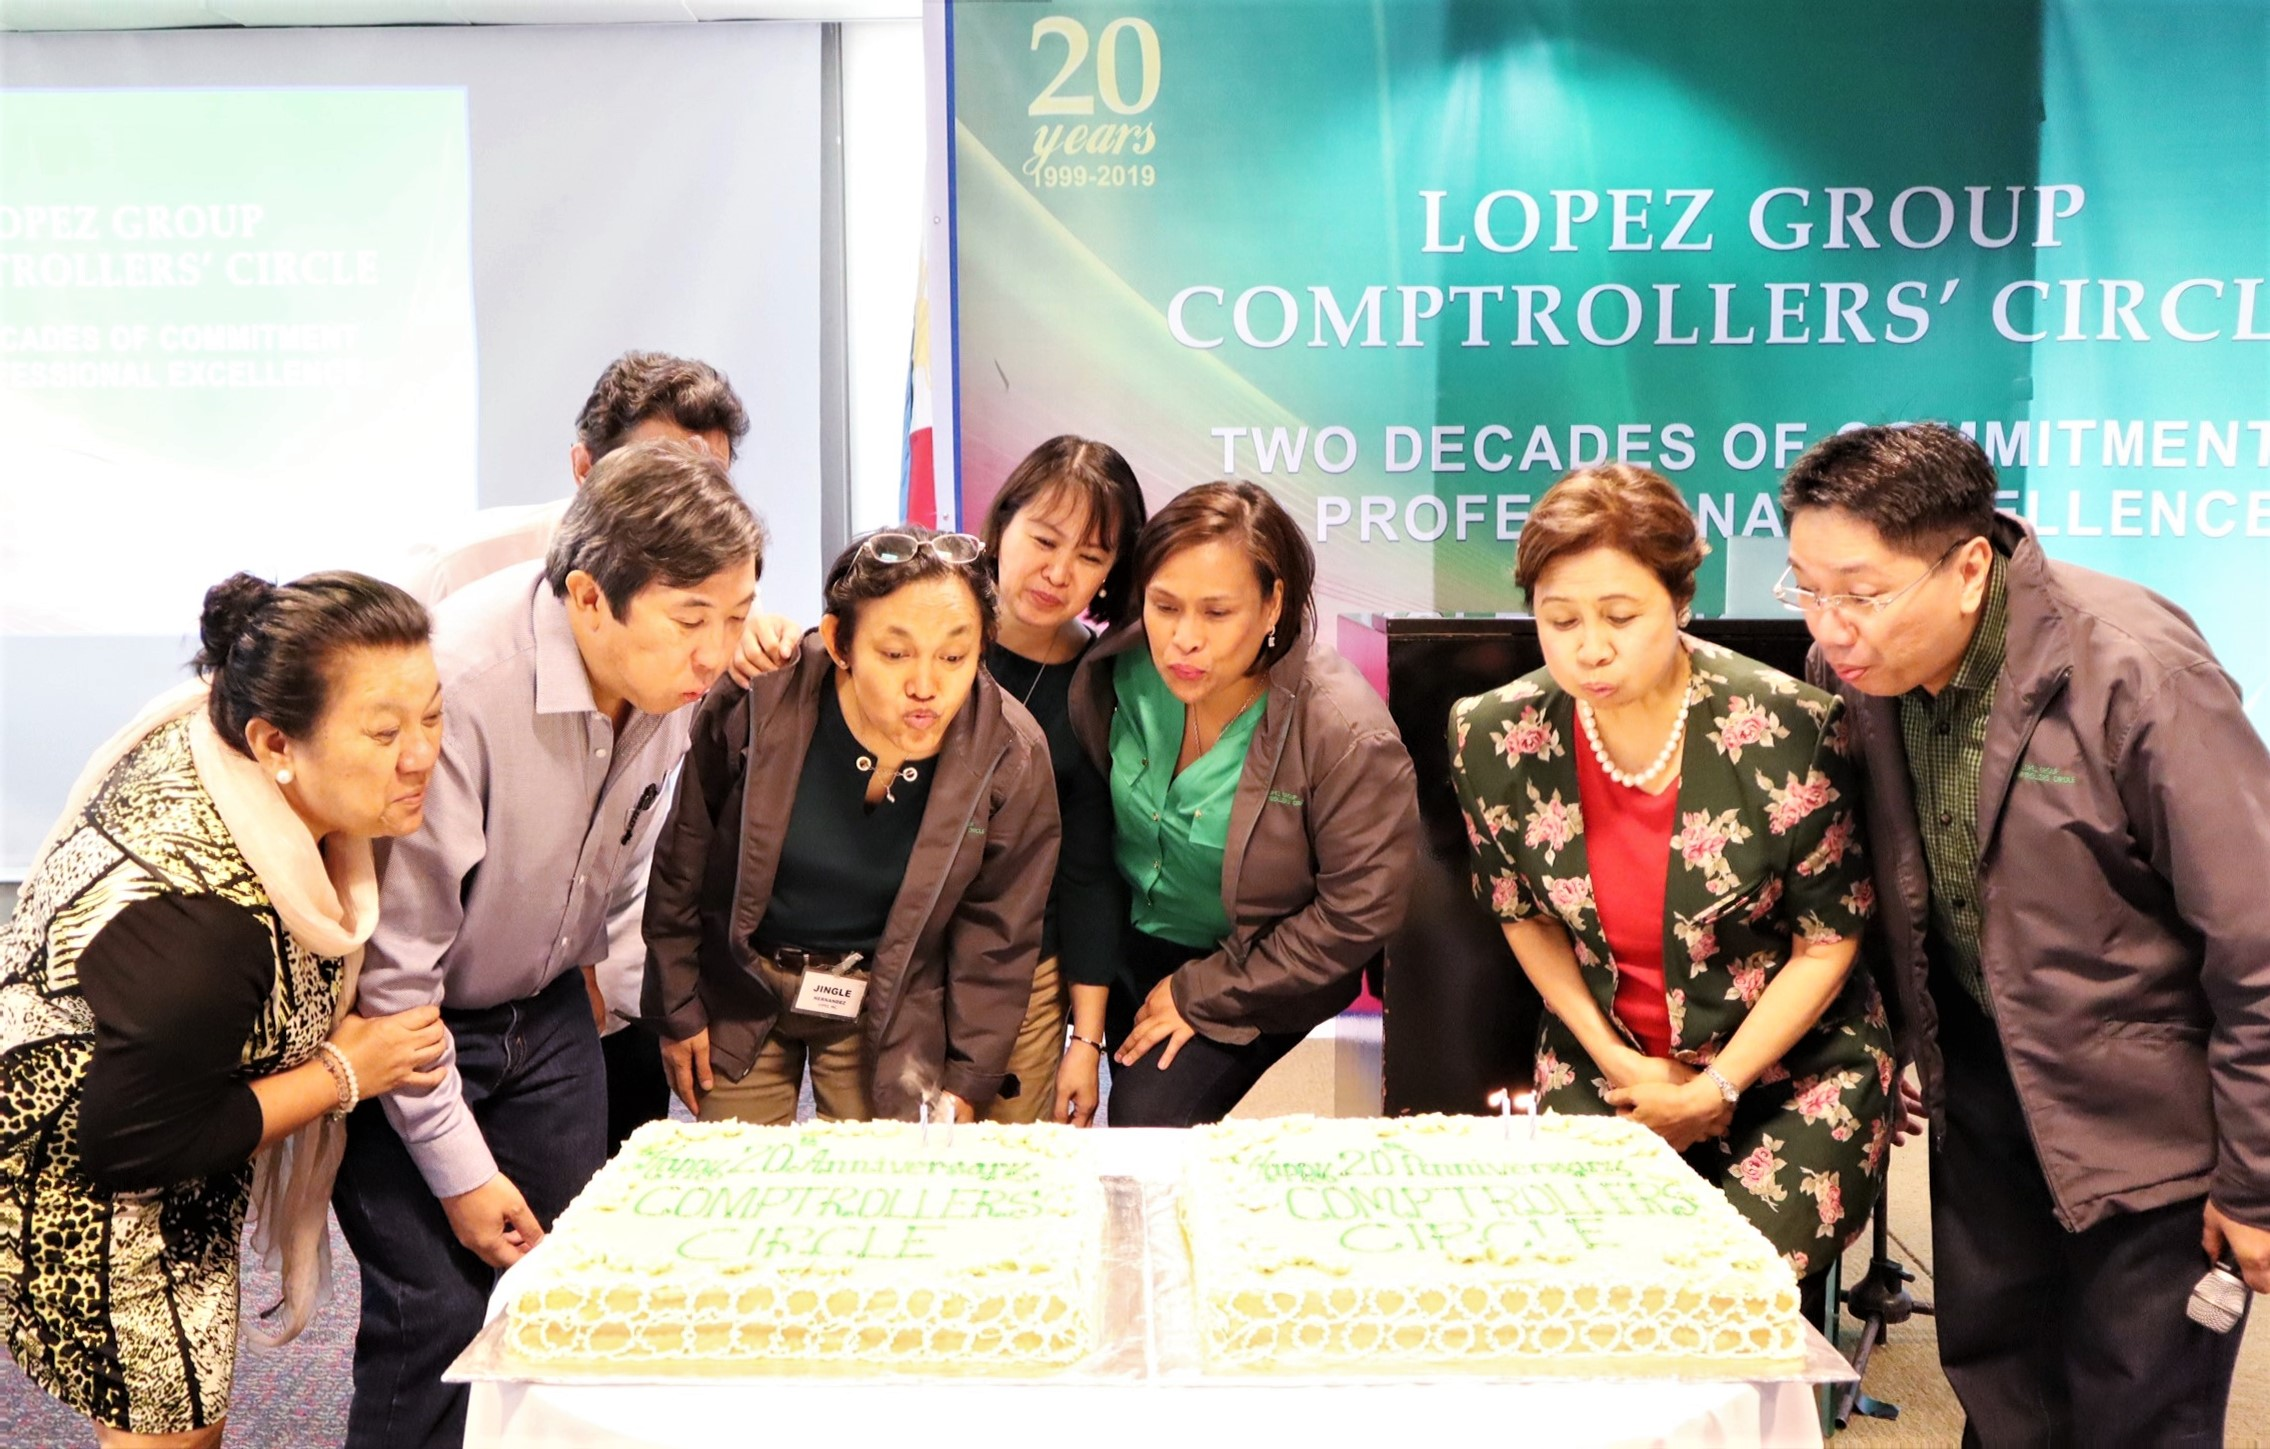 Past and present officers and core team members blow the candles on the 20th anniversary cake